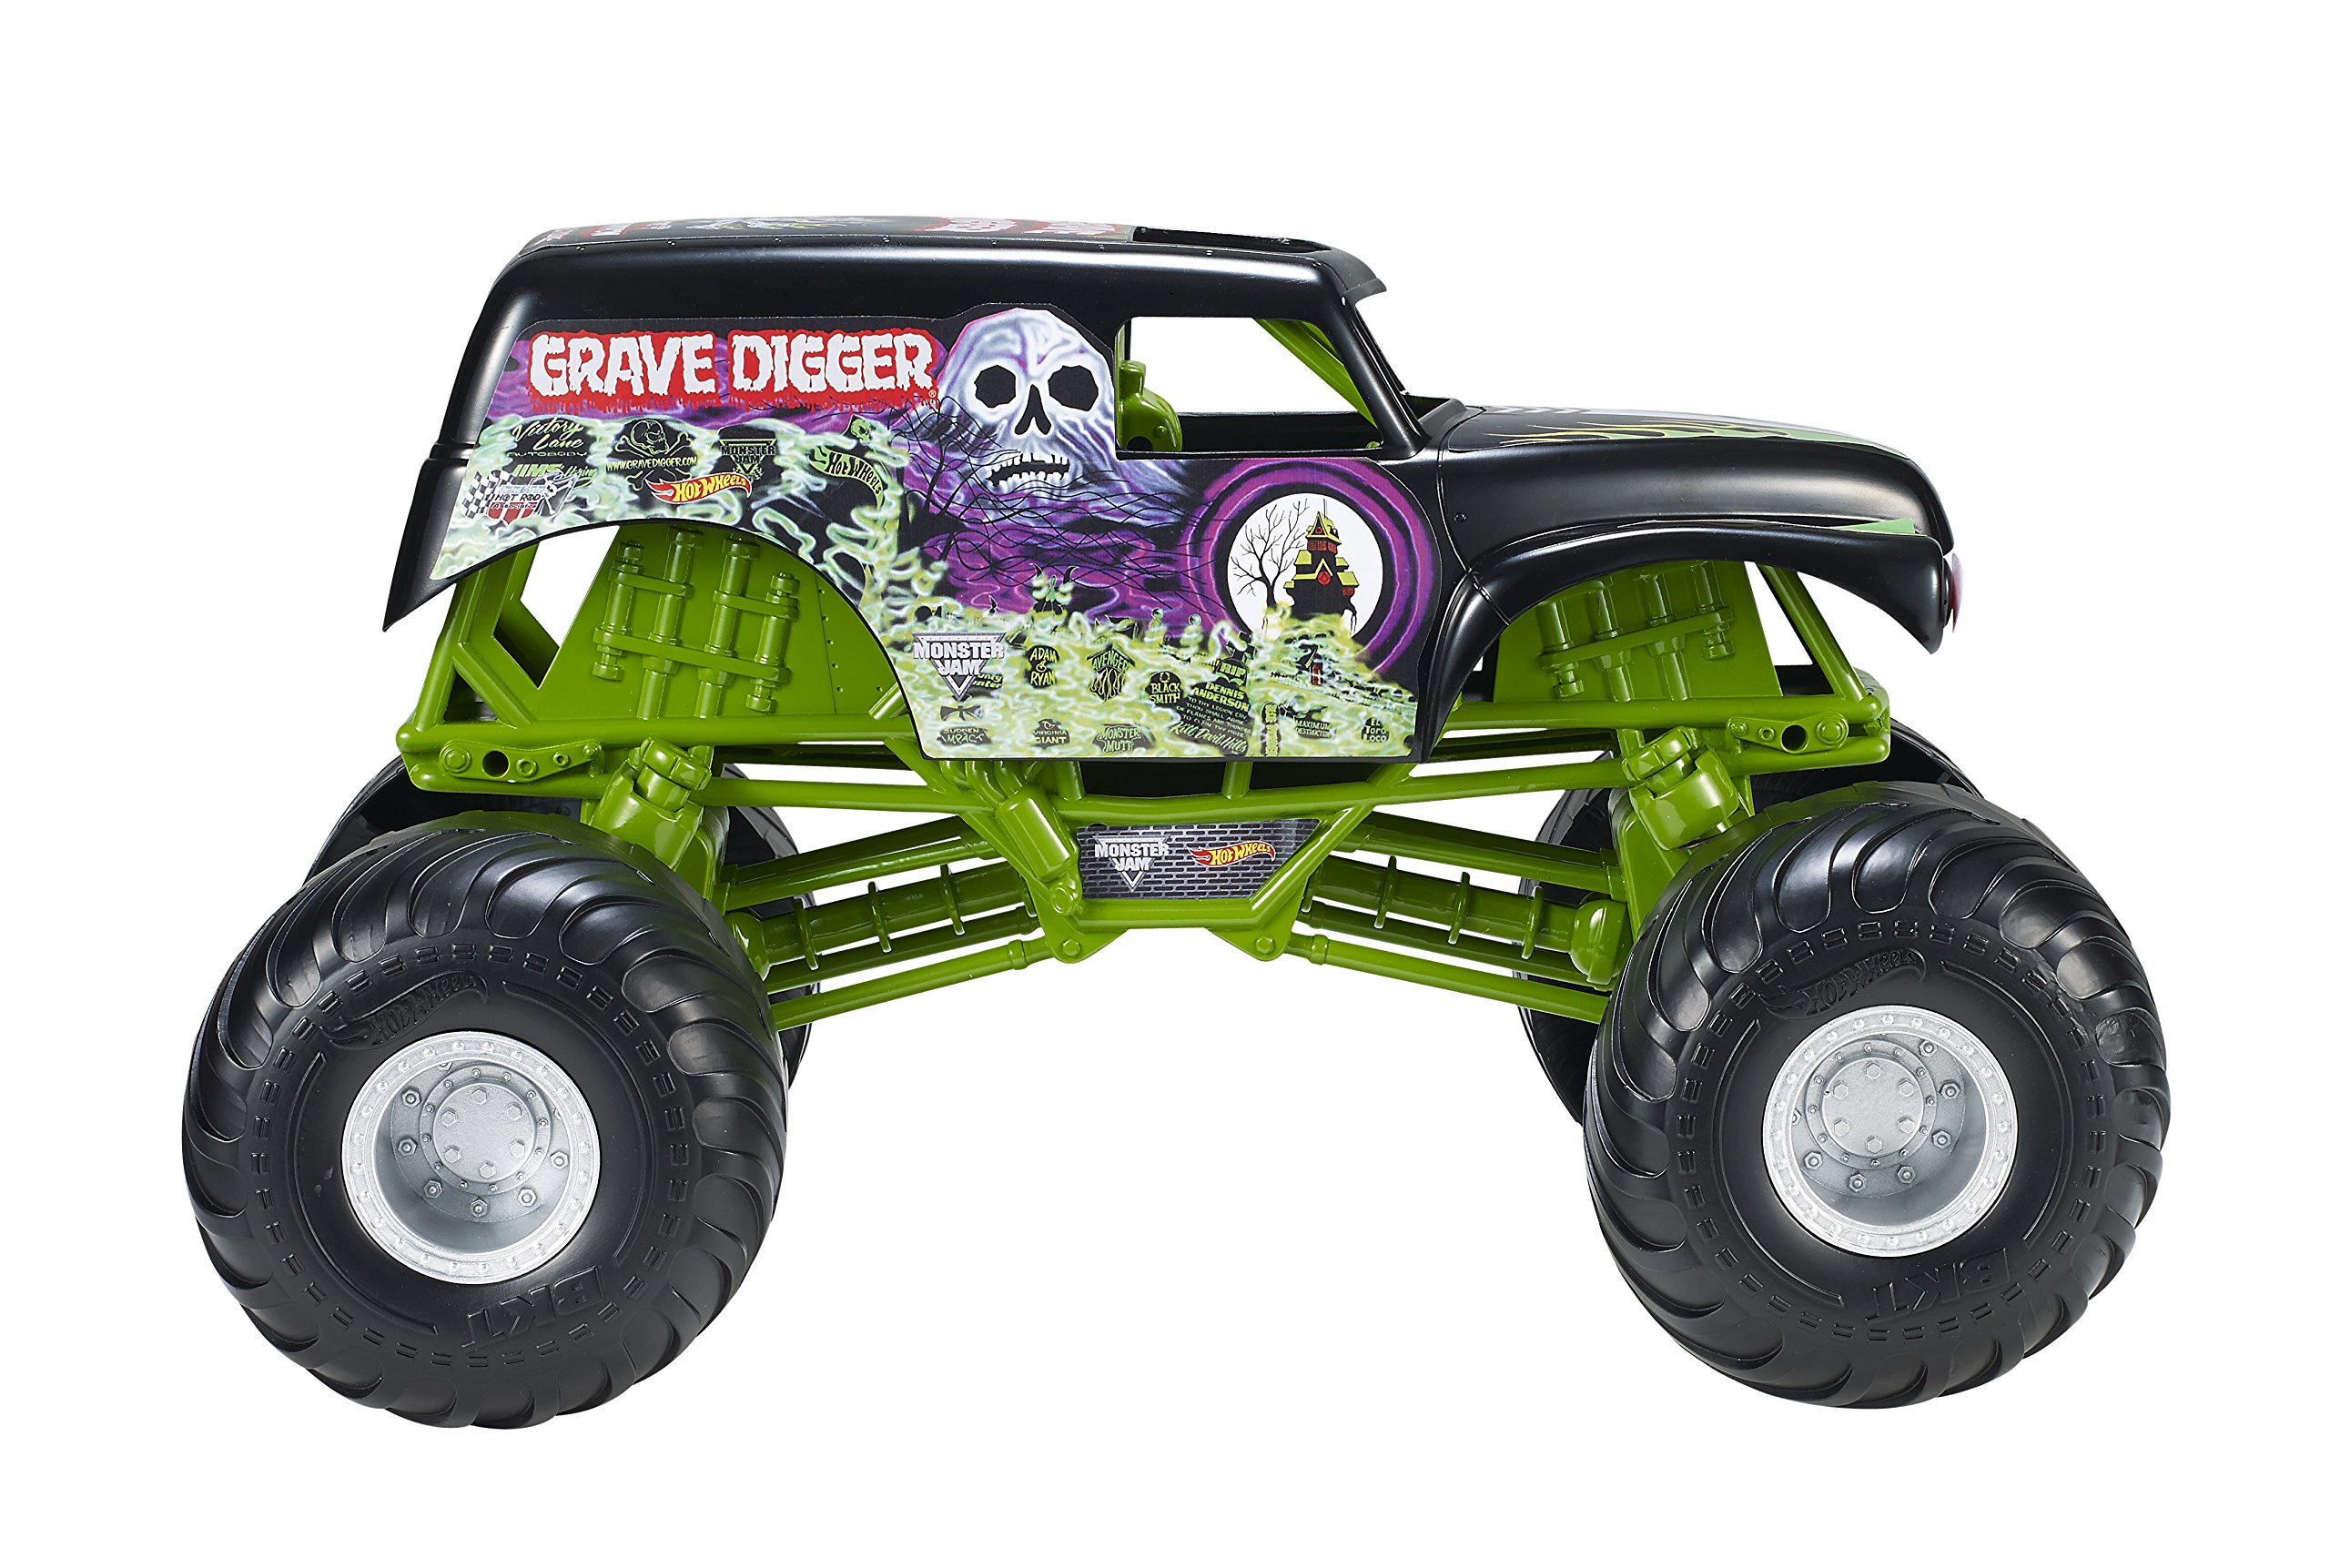 Hot Wheels Monster Jam Giant Grave Digger Truck by Hot Wheels (Image #5)